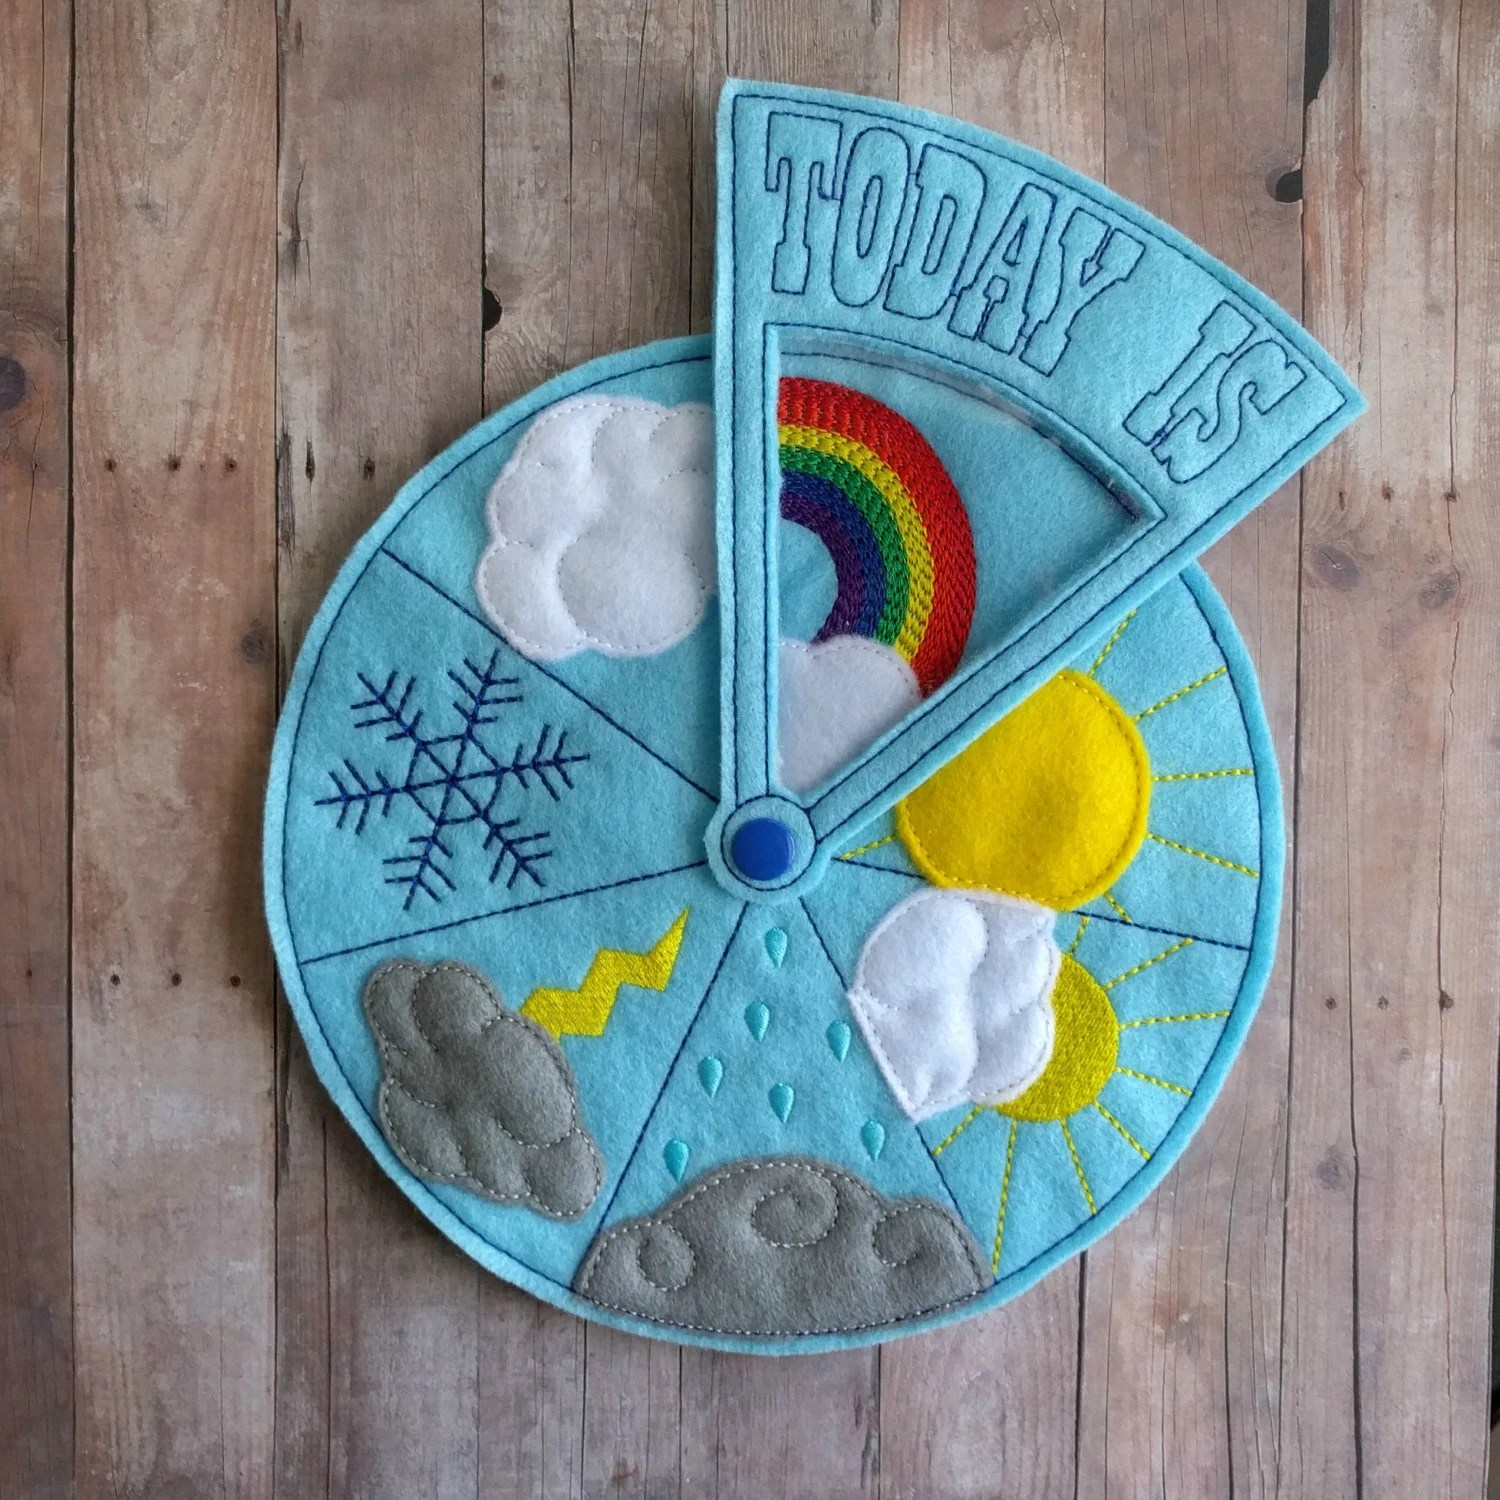 Today S Weather Wheel Teach Weather To Children For